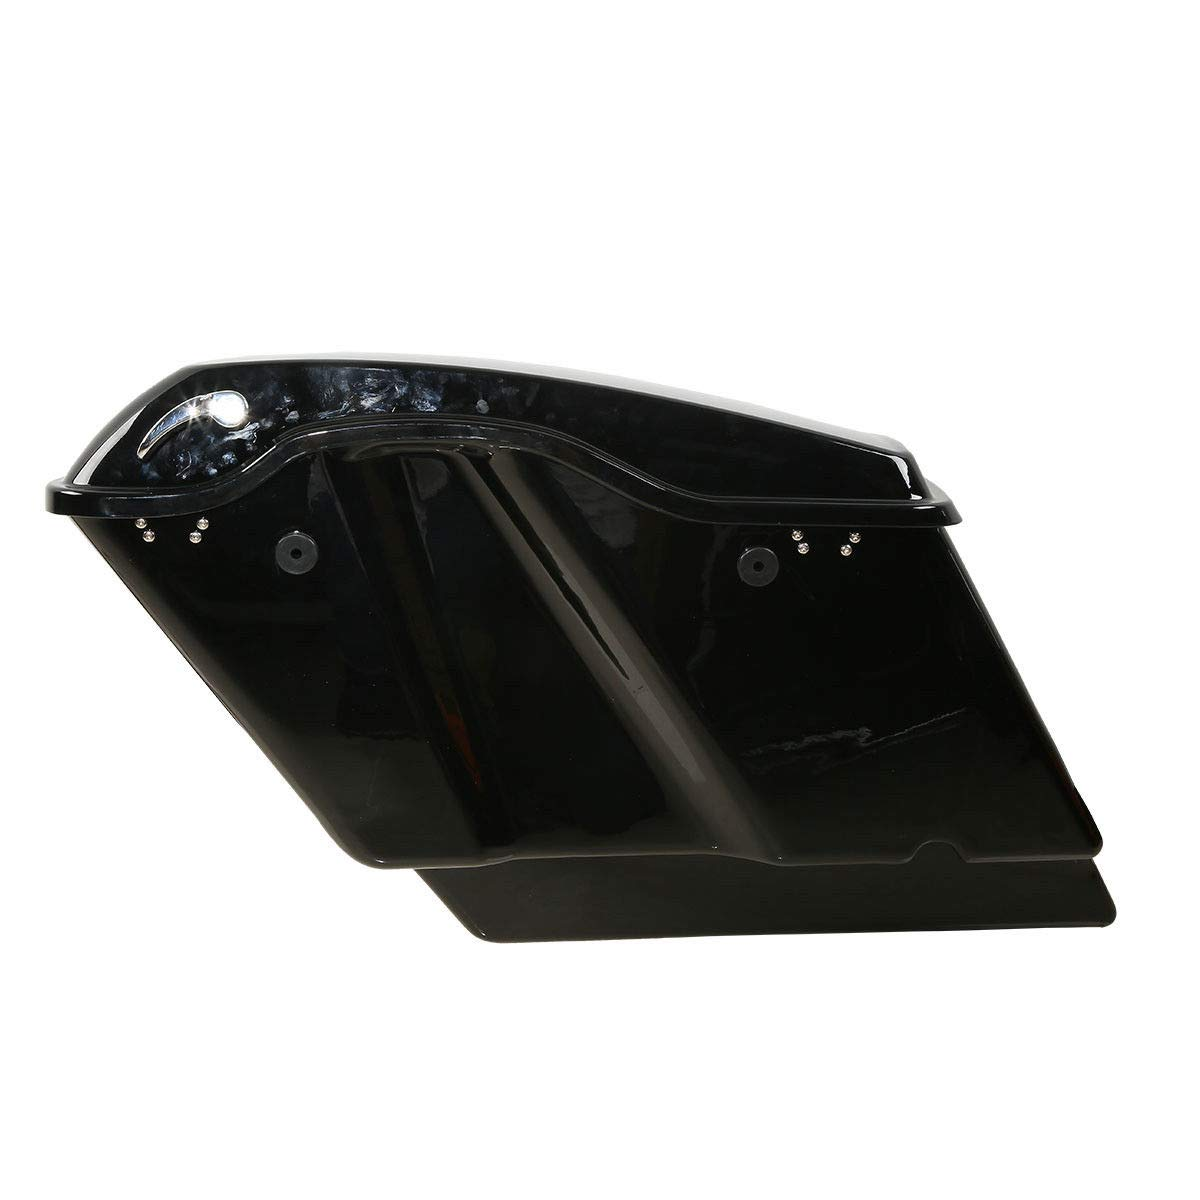 TCMT 5'' Stretched Extended Saddlebags W/Latch Key Fits For Harley Touring 2014-2019 by TCMT (Image #3)